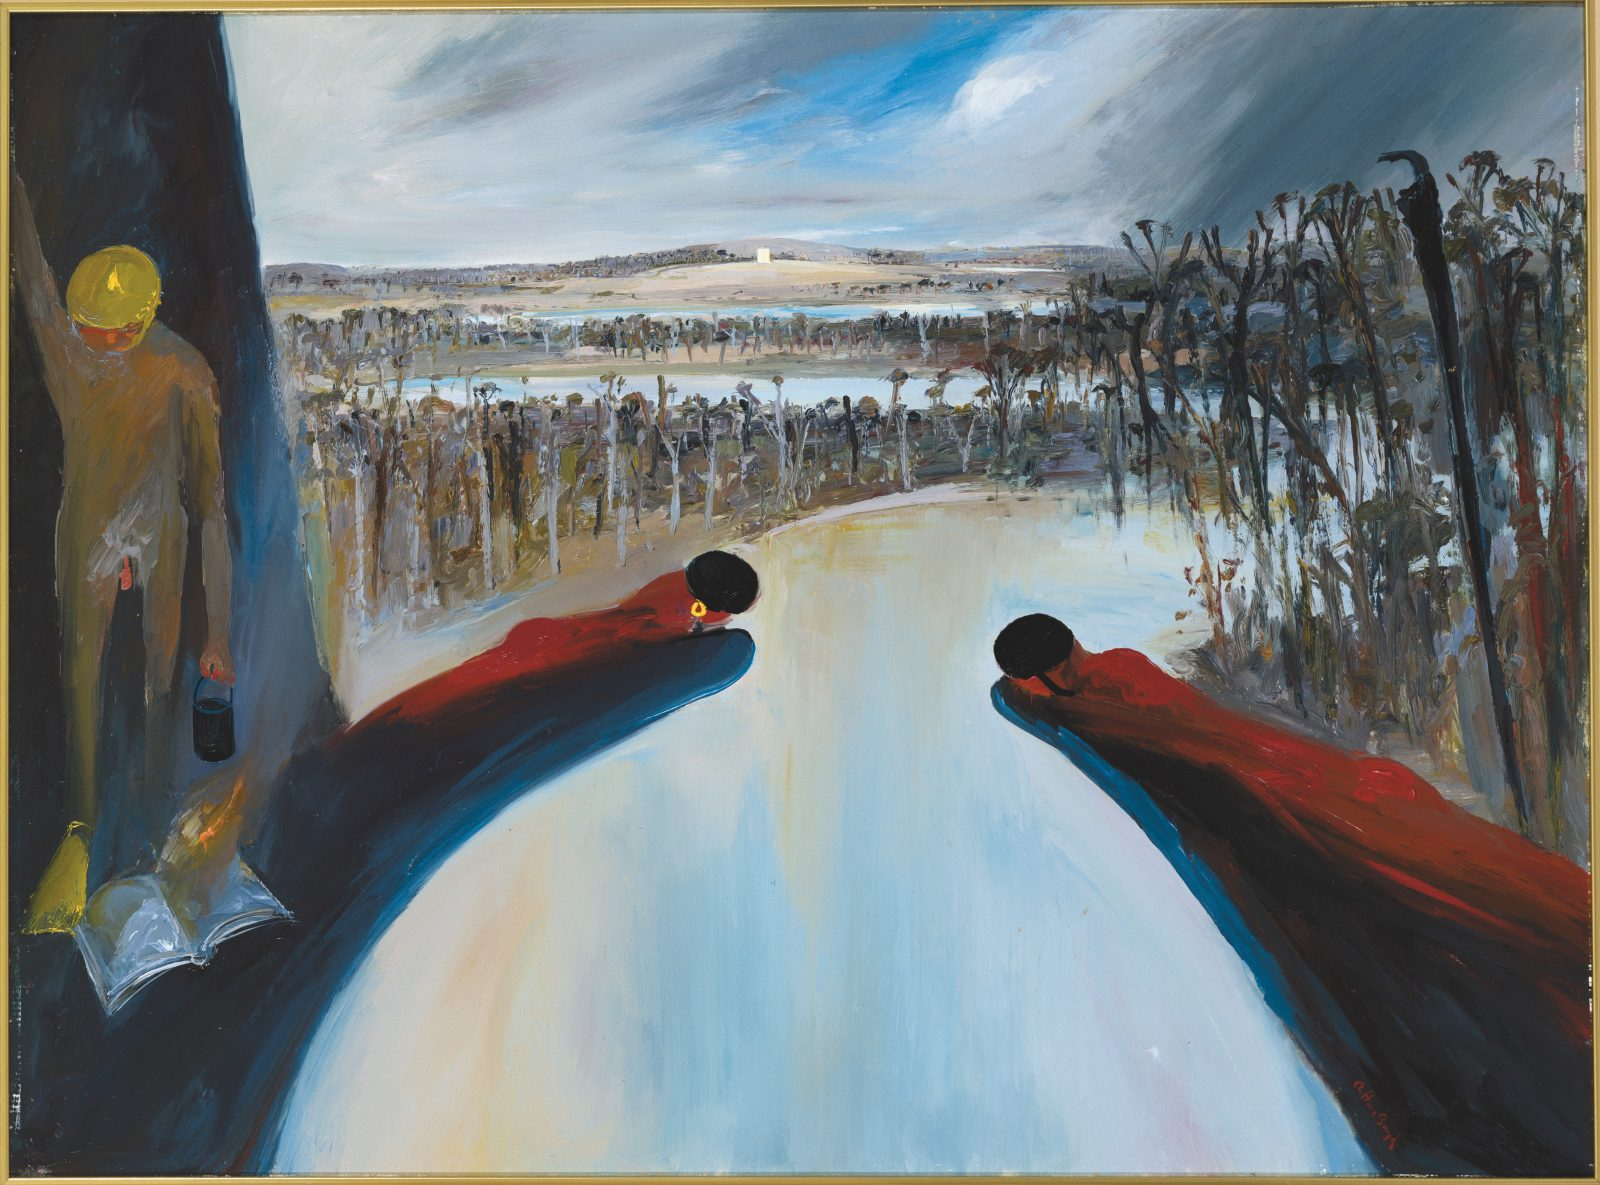 Arthur Boyd, Hanging rocks bathers and Mars, 1985, oil on canvas. Bundanon Trust Collection